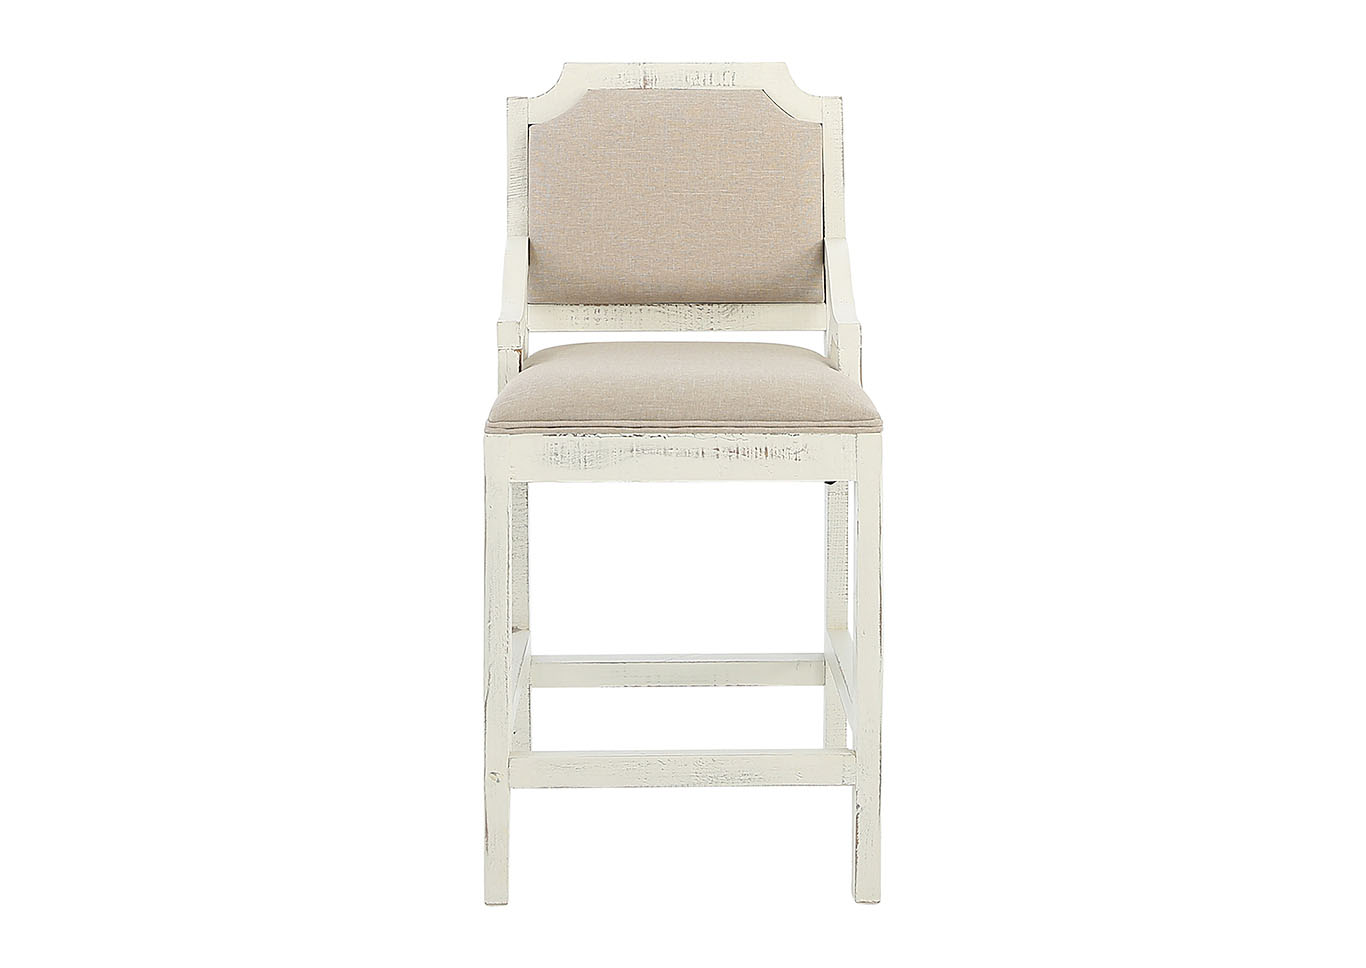 Swell Ivan Smith Camry Barstool Padded Seat With Back Bralicious Painted Fabric Chair Ideas Braliciousco